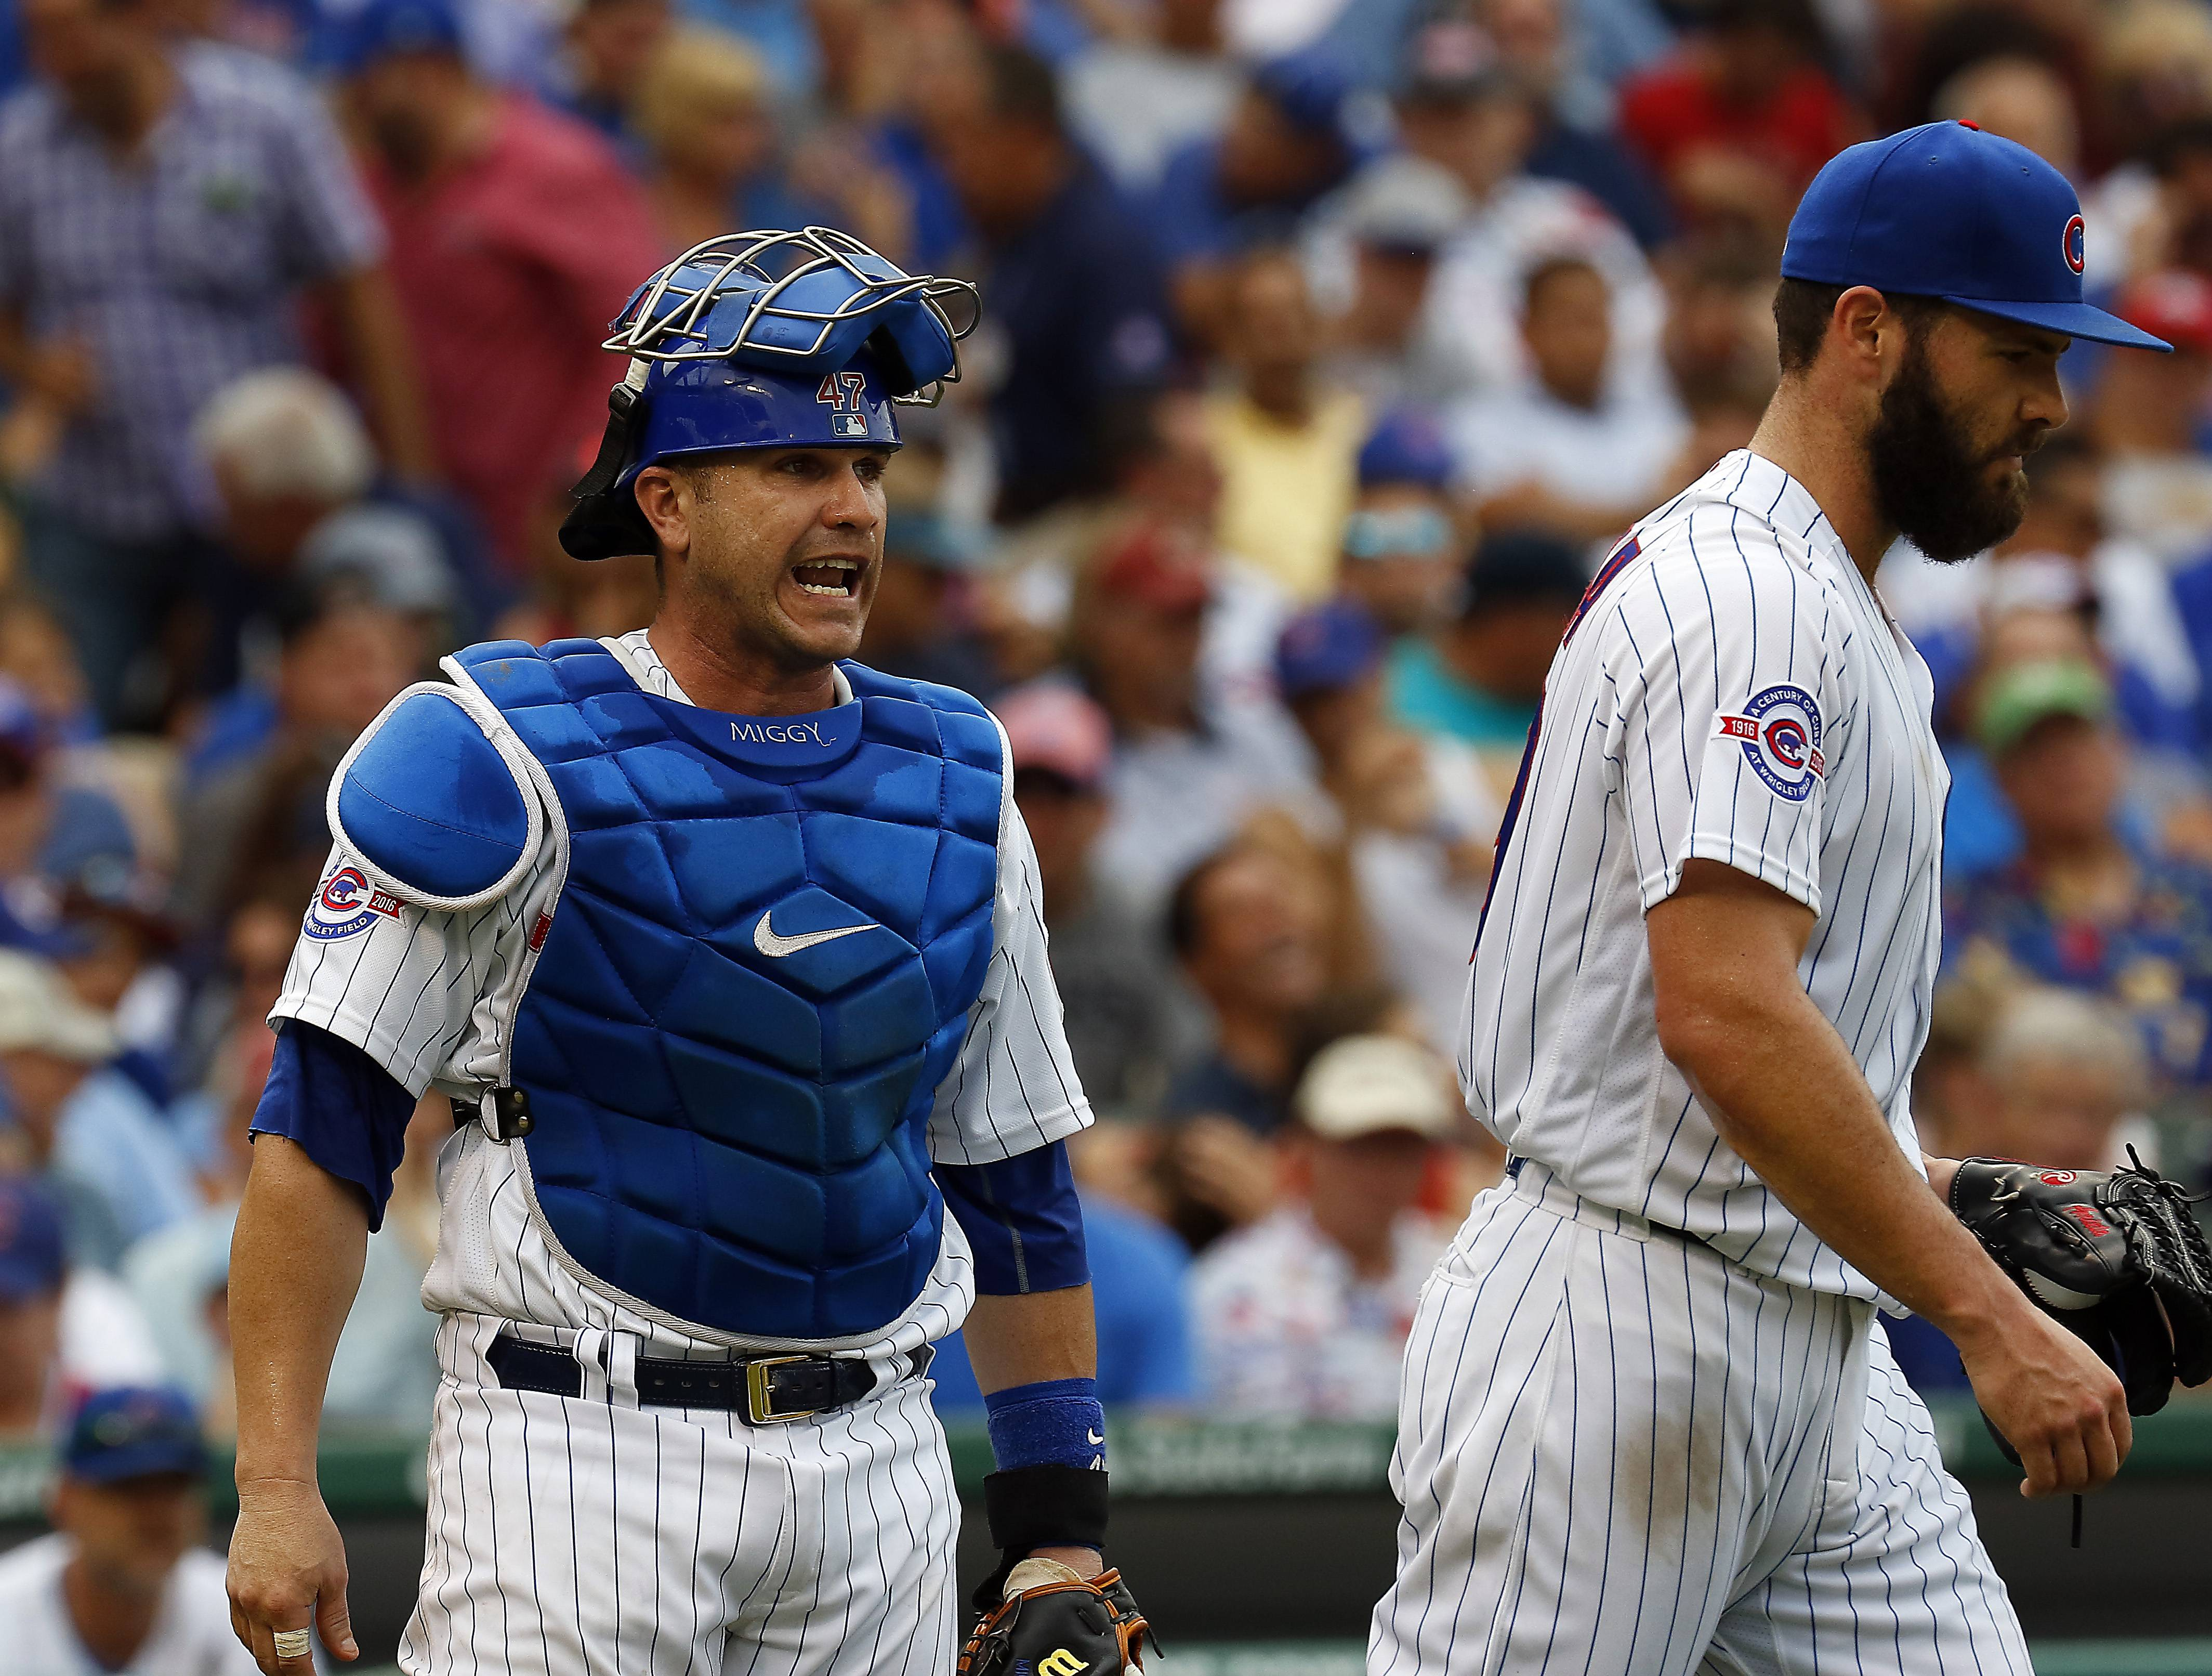 Brian Hill/bhill@dailyherald.com Chicago Cubs catcher Miguel Montero (47) yells some encouragement to Chicago Cubs starting pitcher Jake Arrieta (49) Friday during the Chicago Cubs vs. St. Louis Cardinals at Wrigley Field.